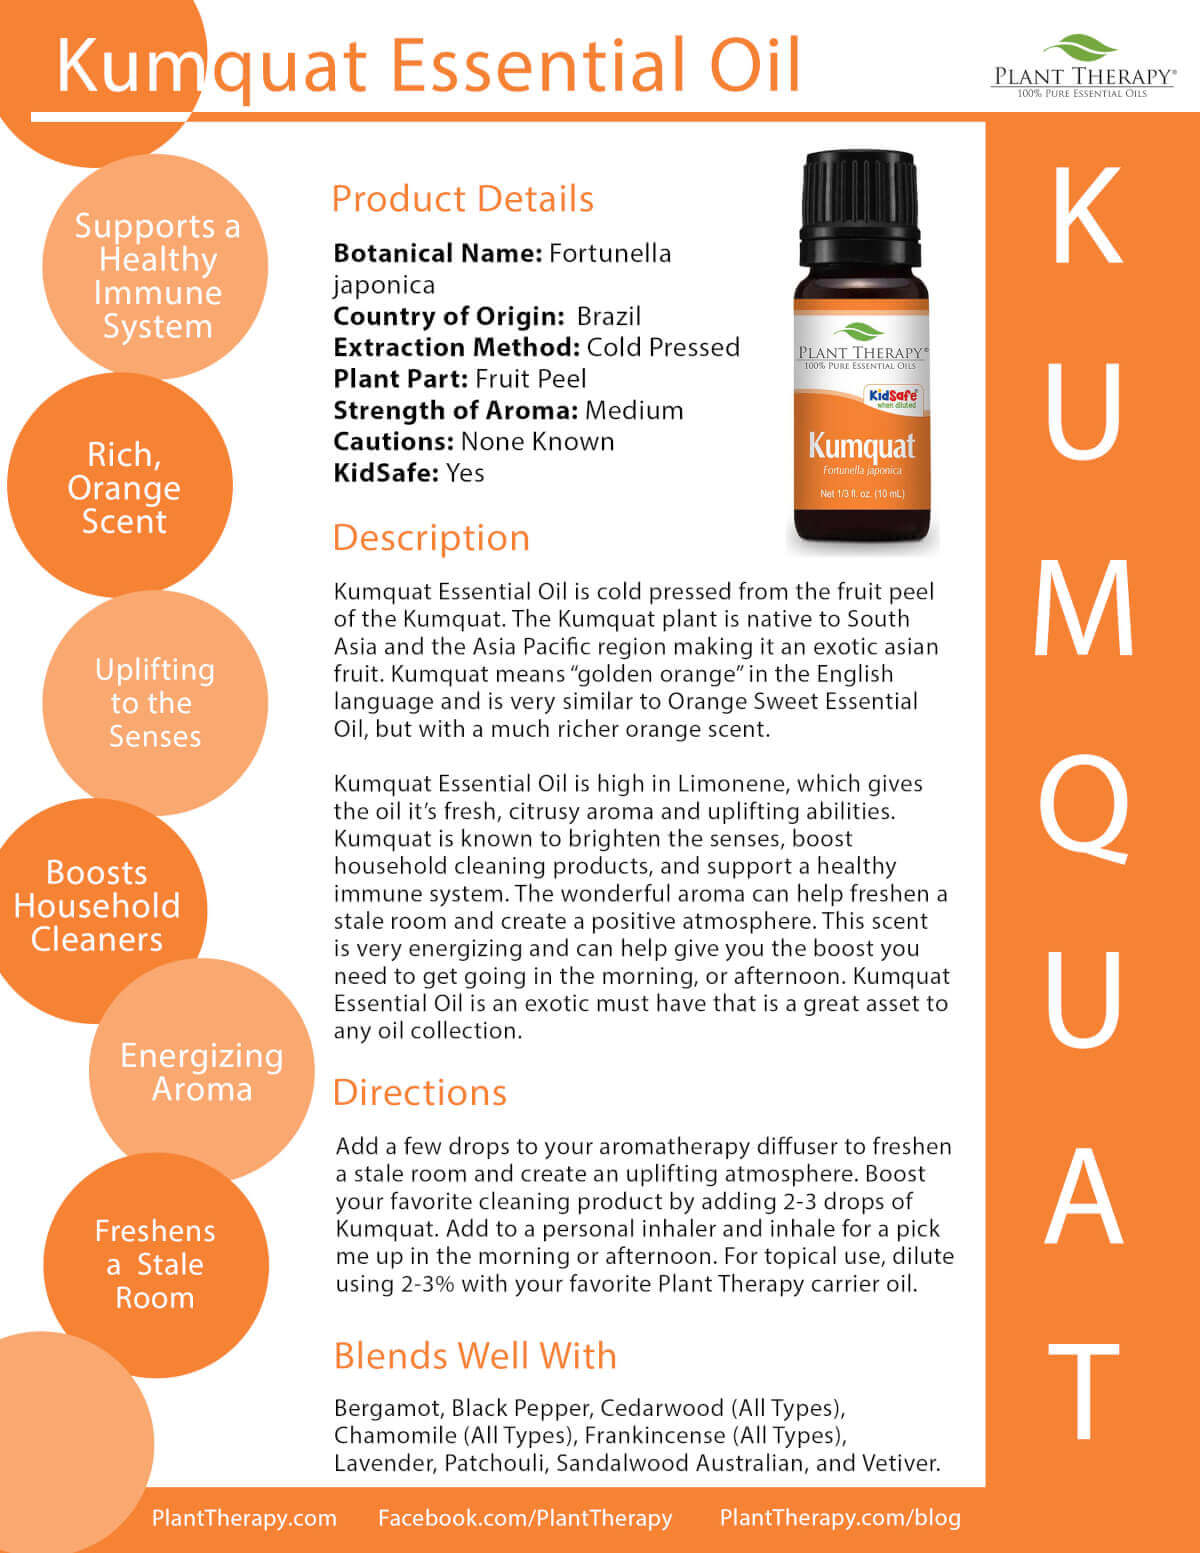 Kumquat Essential Oil Profile